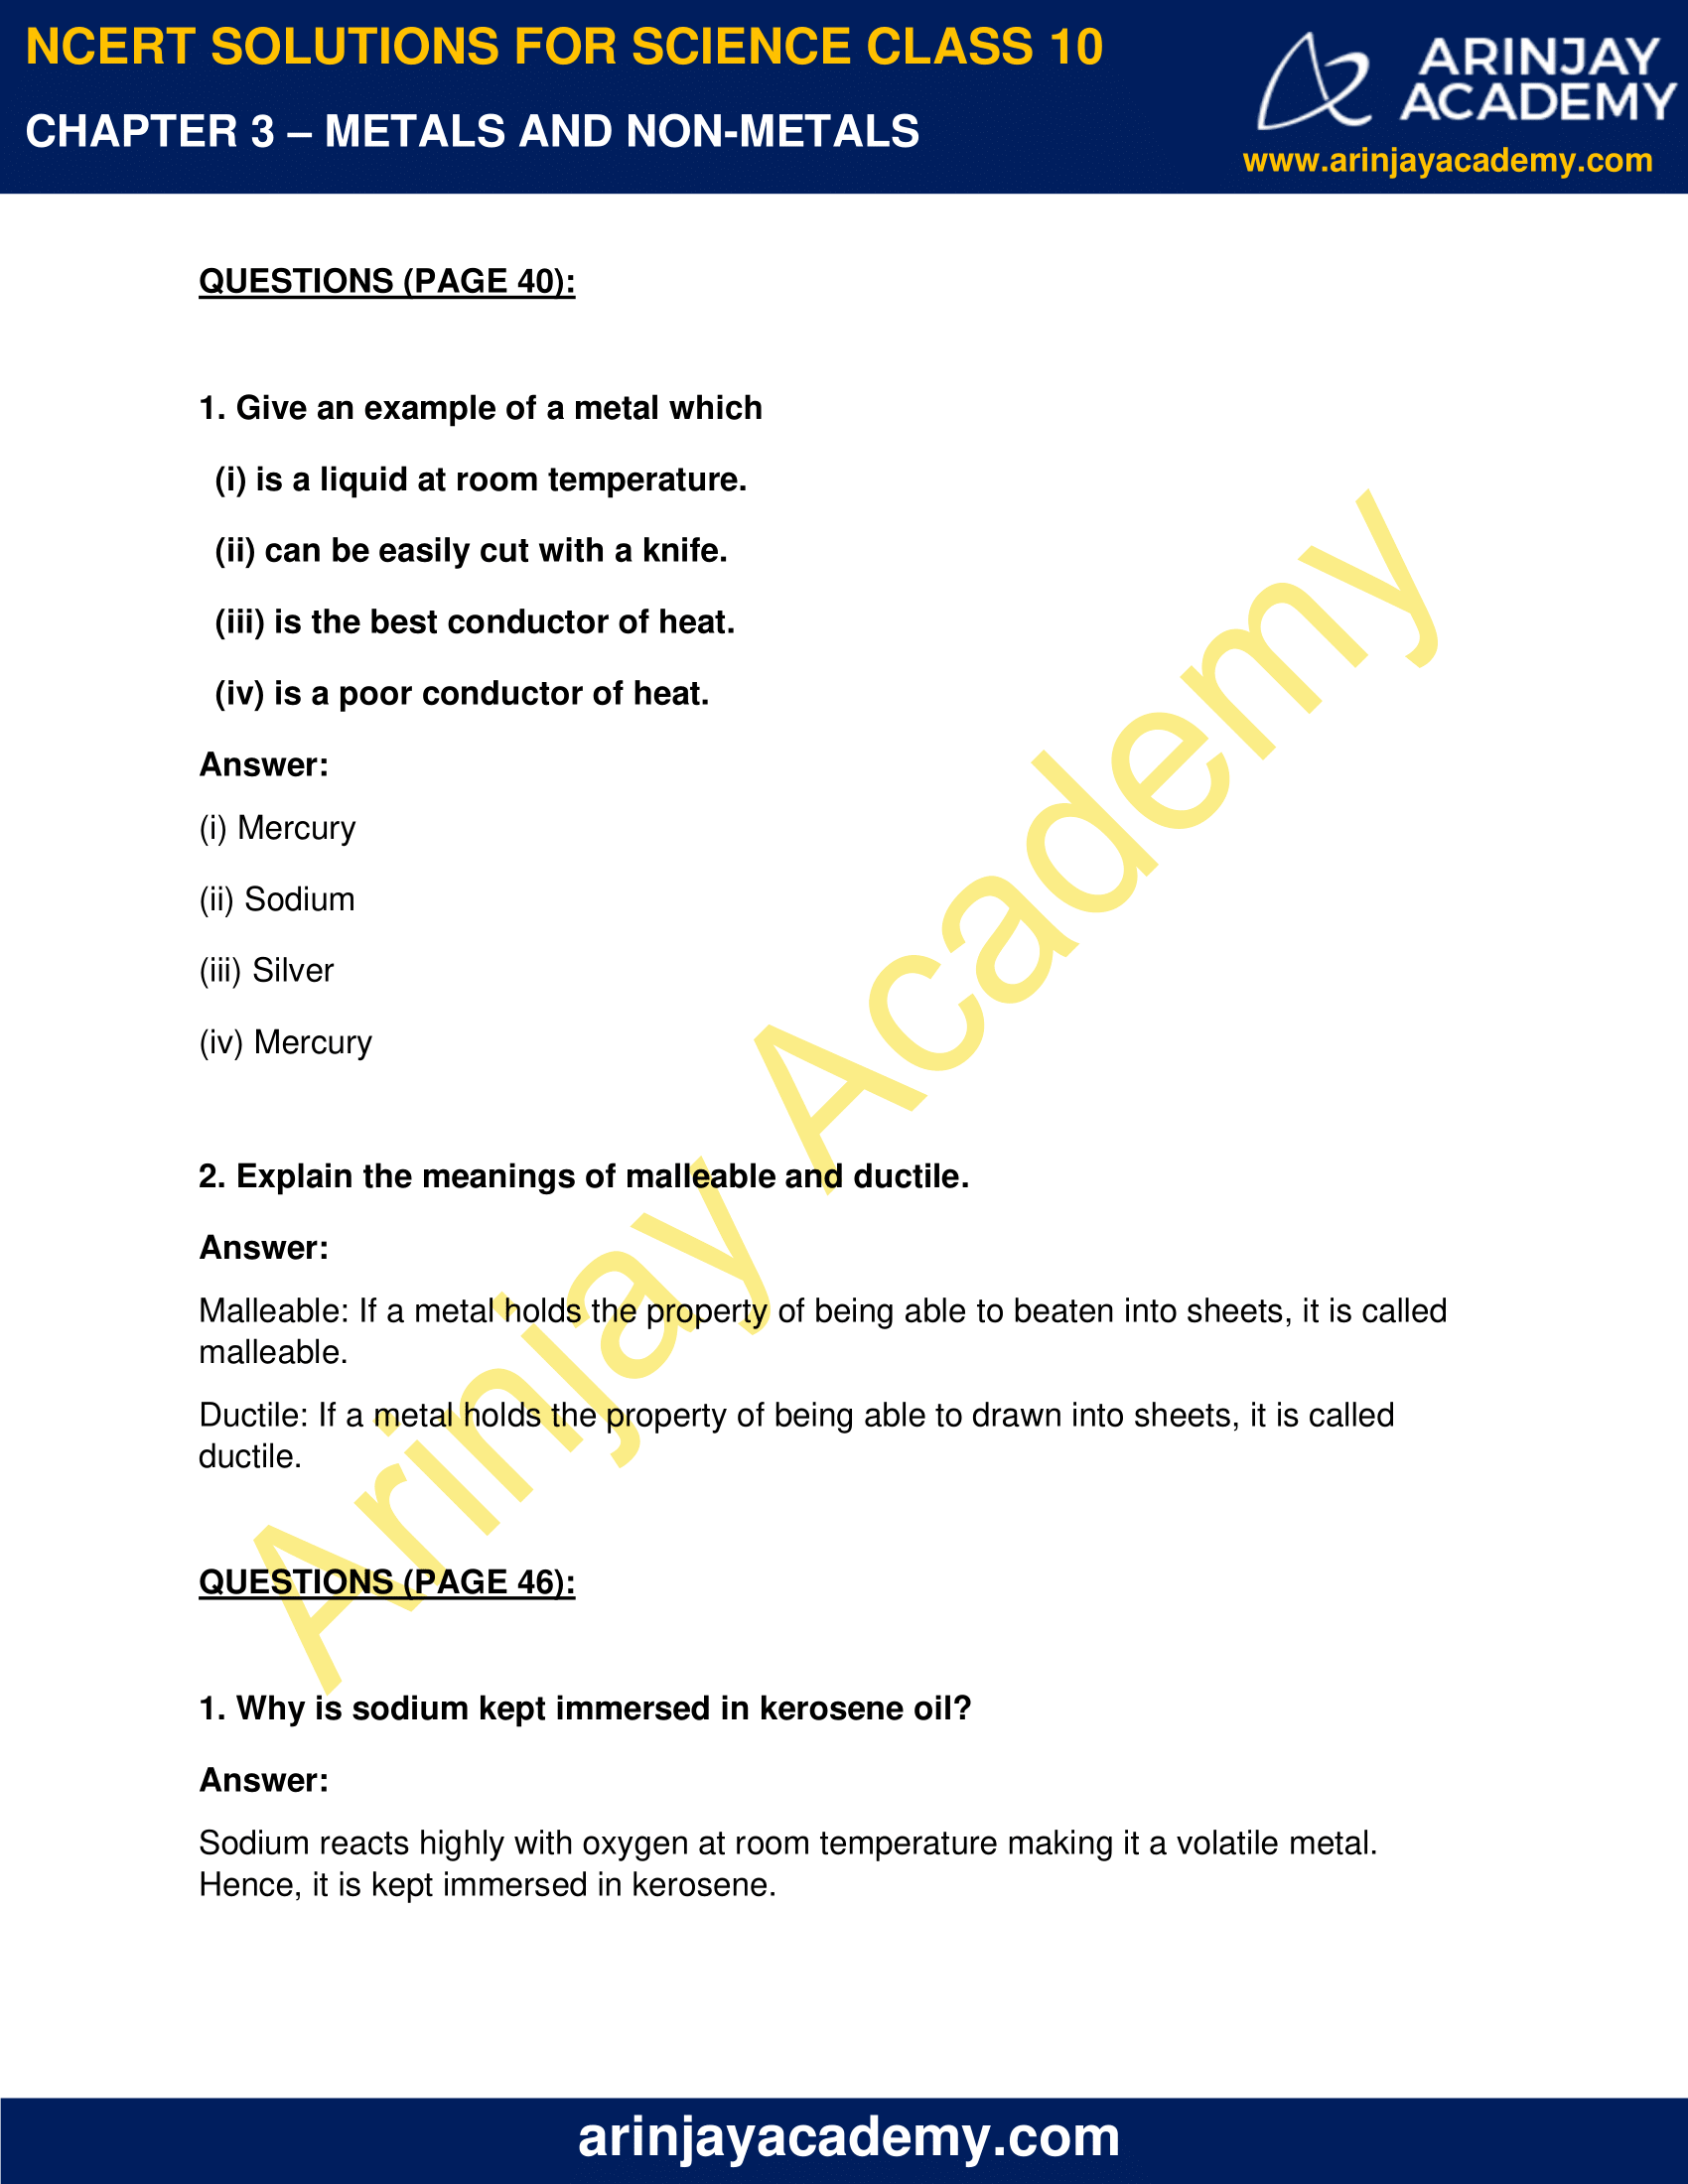 NCERT Solutions for Class 10 Science Chapter 3 image 1